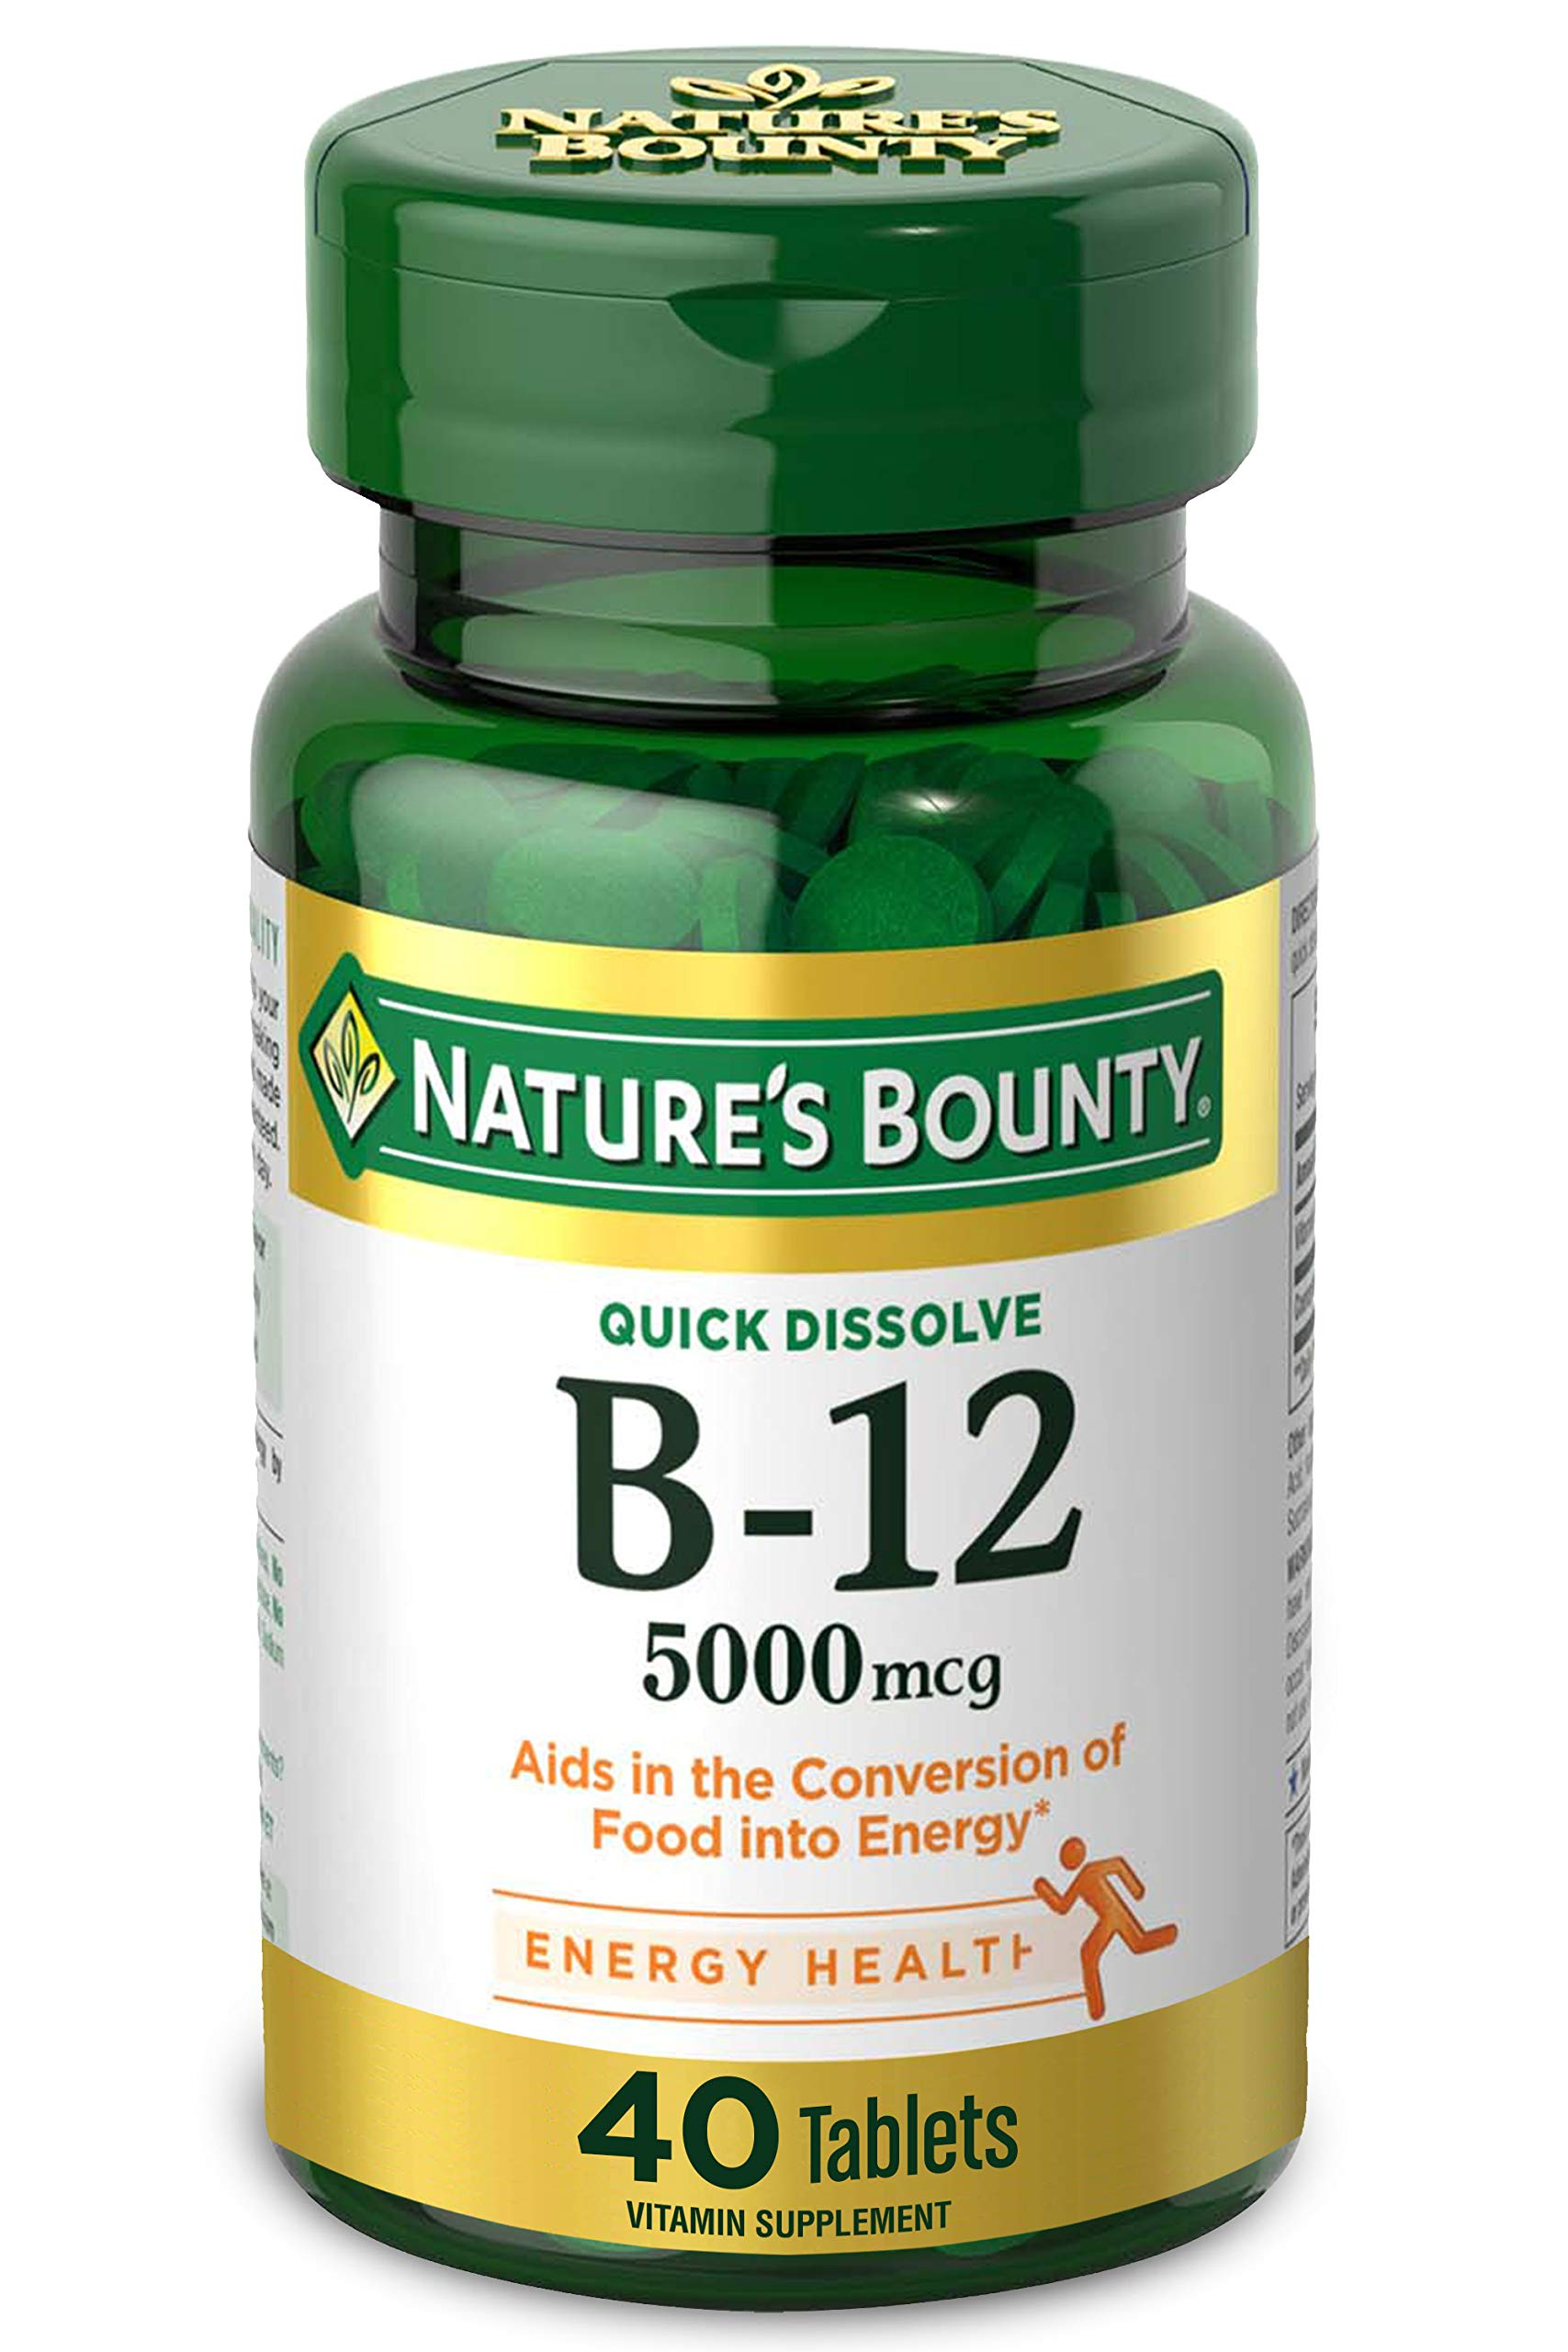 Nature's Bounty Vitamin B-12 Supplement, Supports Metabolism and Nervous System Health, 5000mcg, 40 Tablets